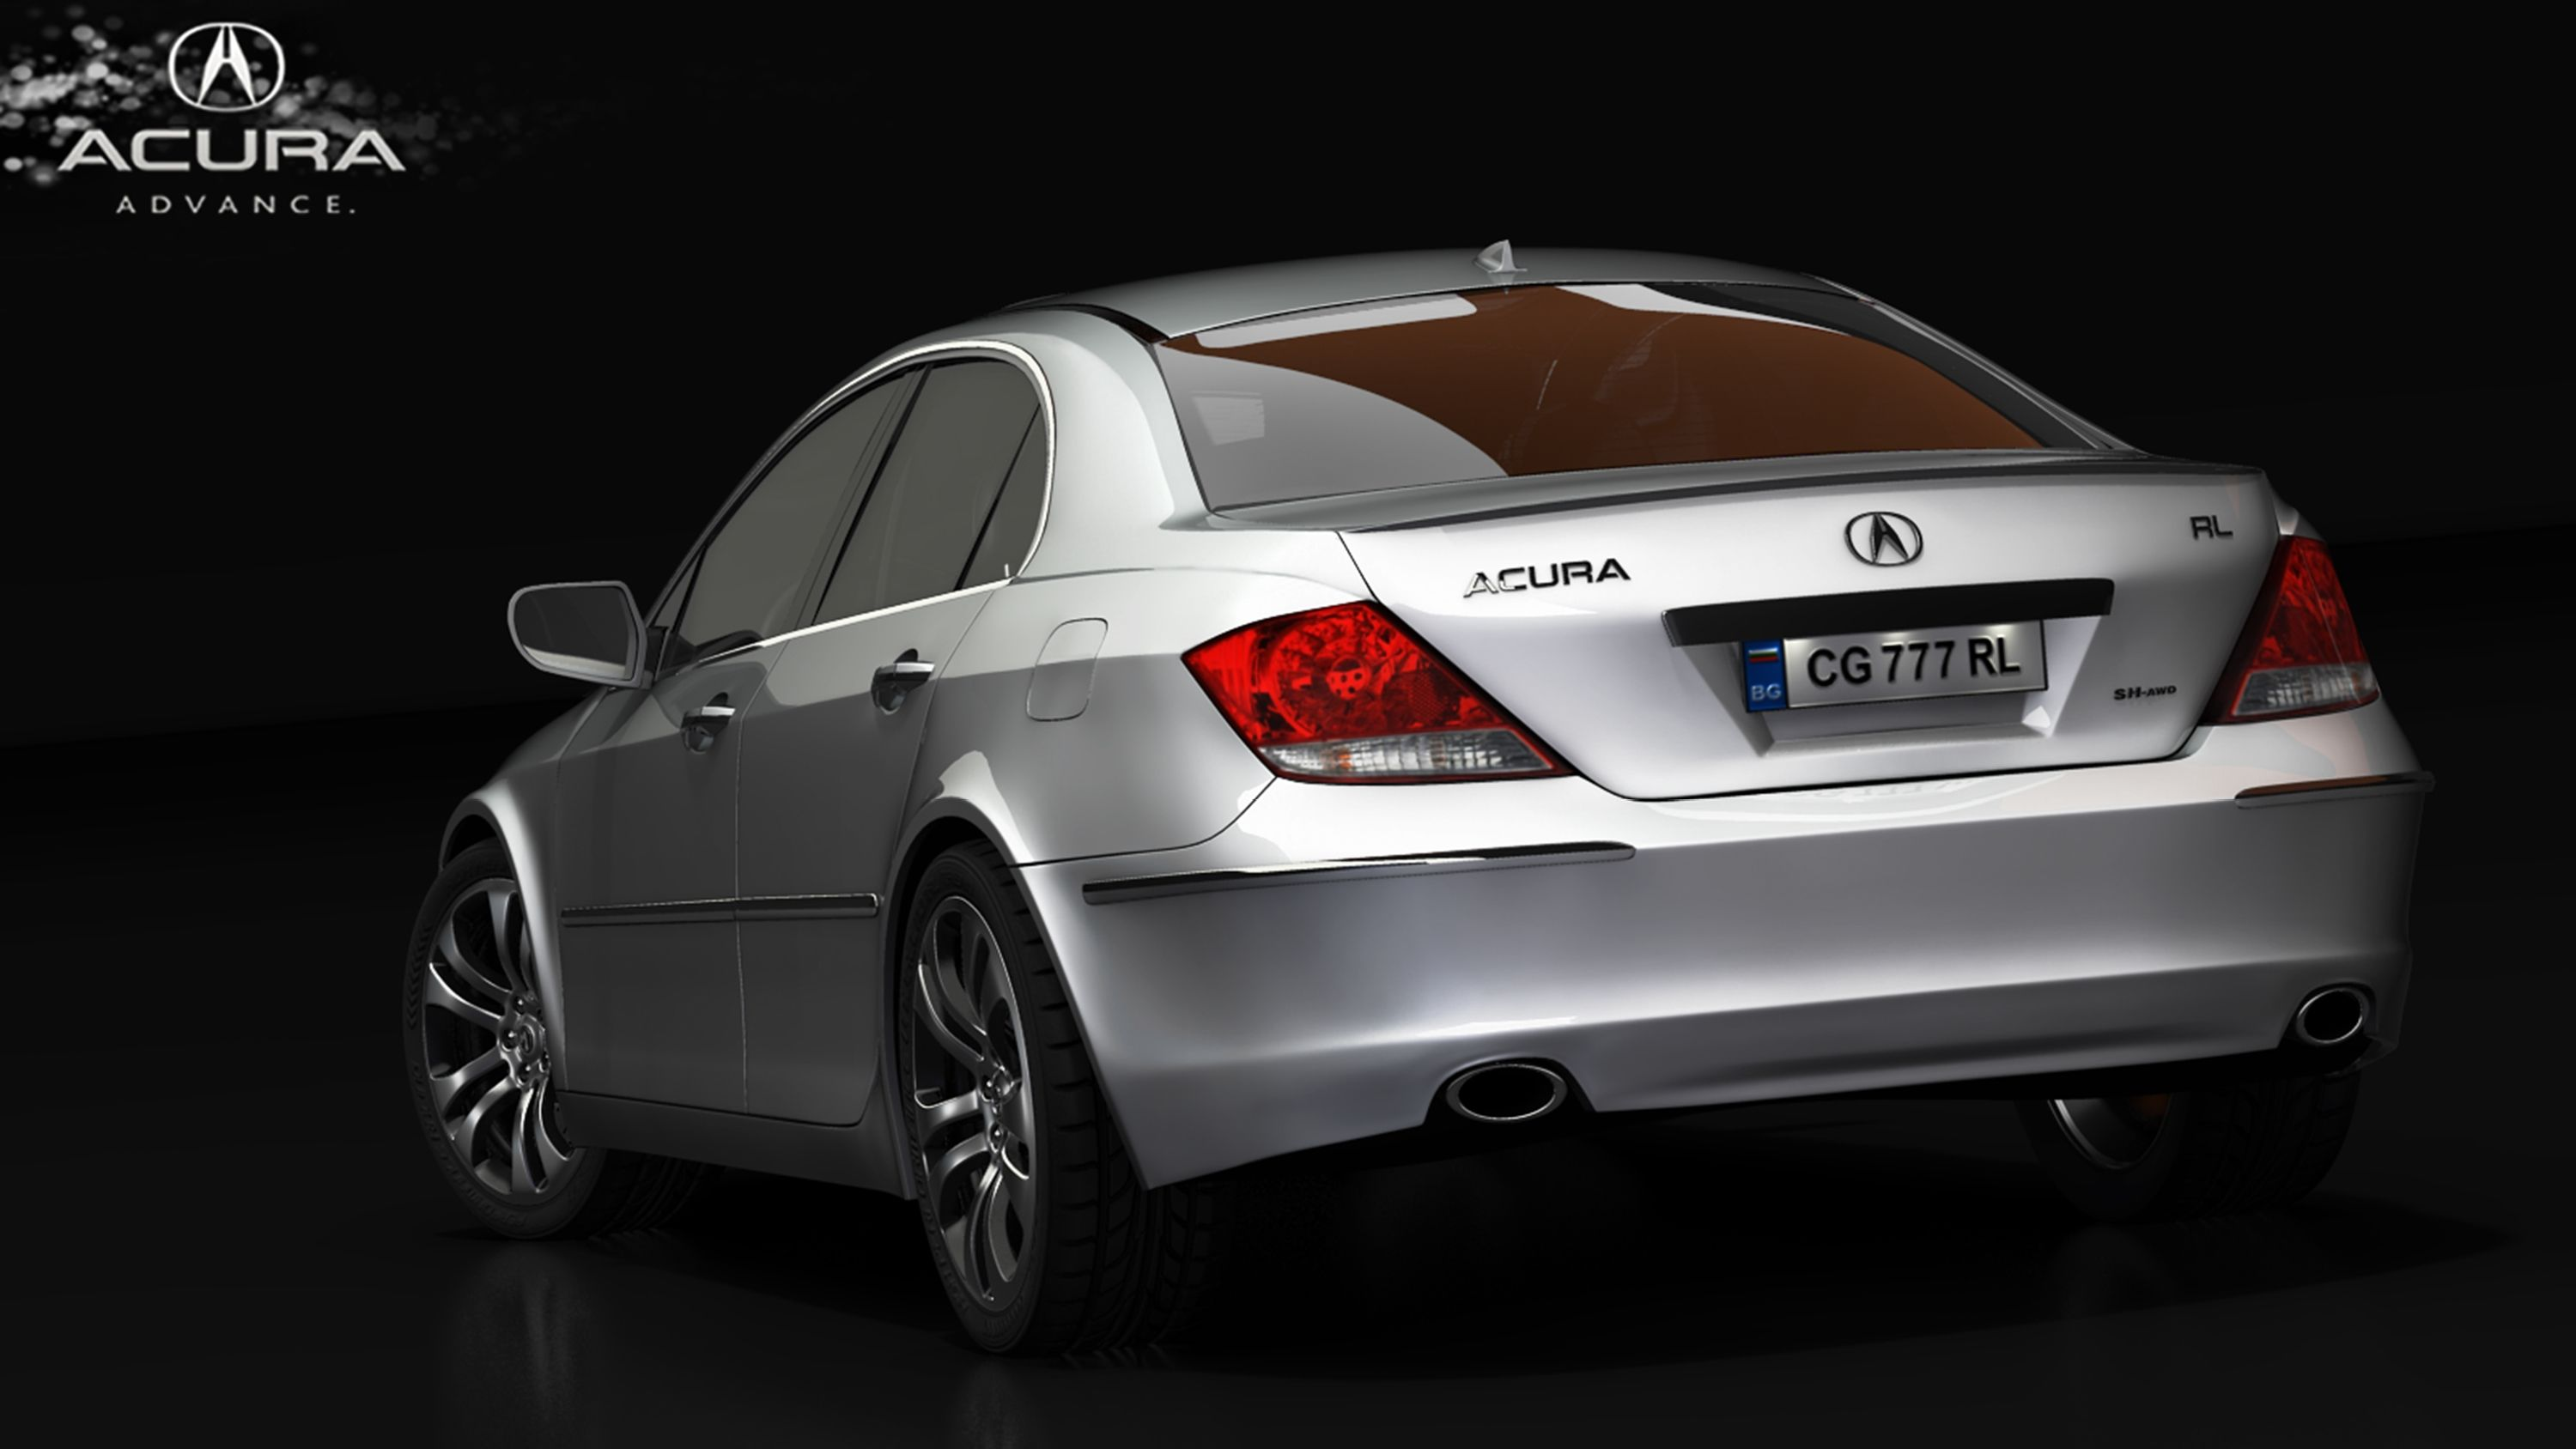 acura rl is a flagship mid size sedan by japanese luxury brand acura marketed in japan as the. Black Bedroom Furniture Sets. Home Design Ideas